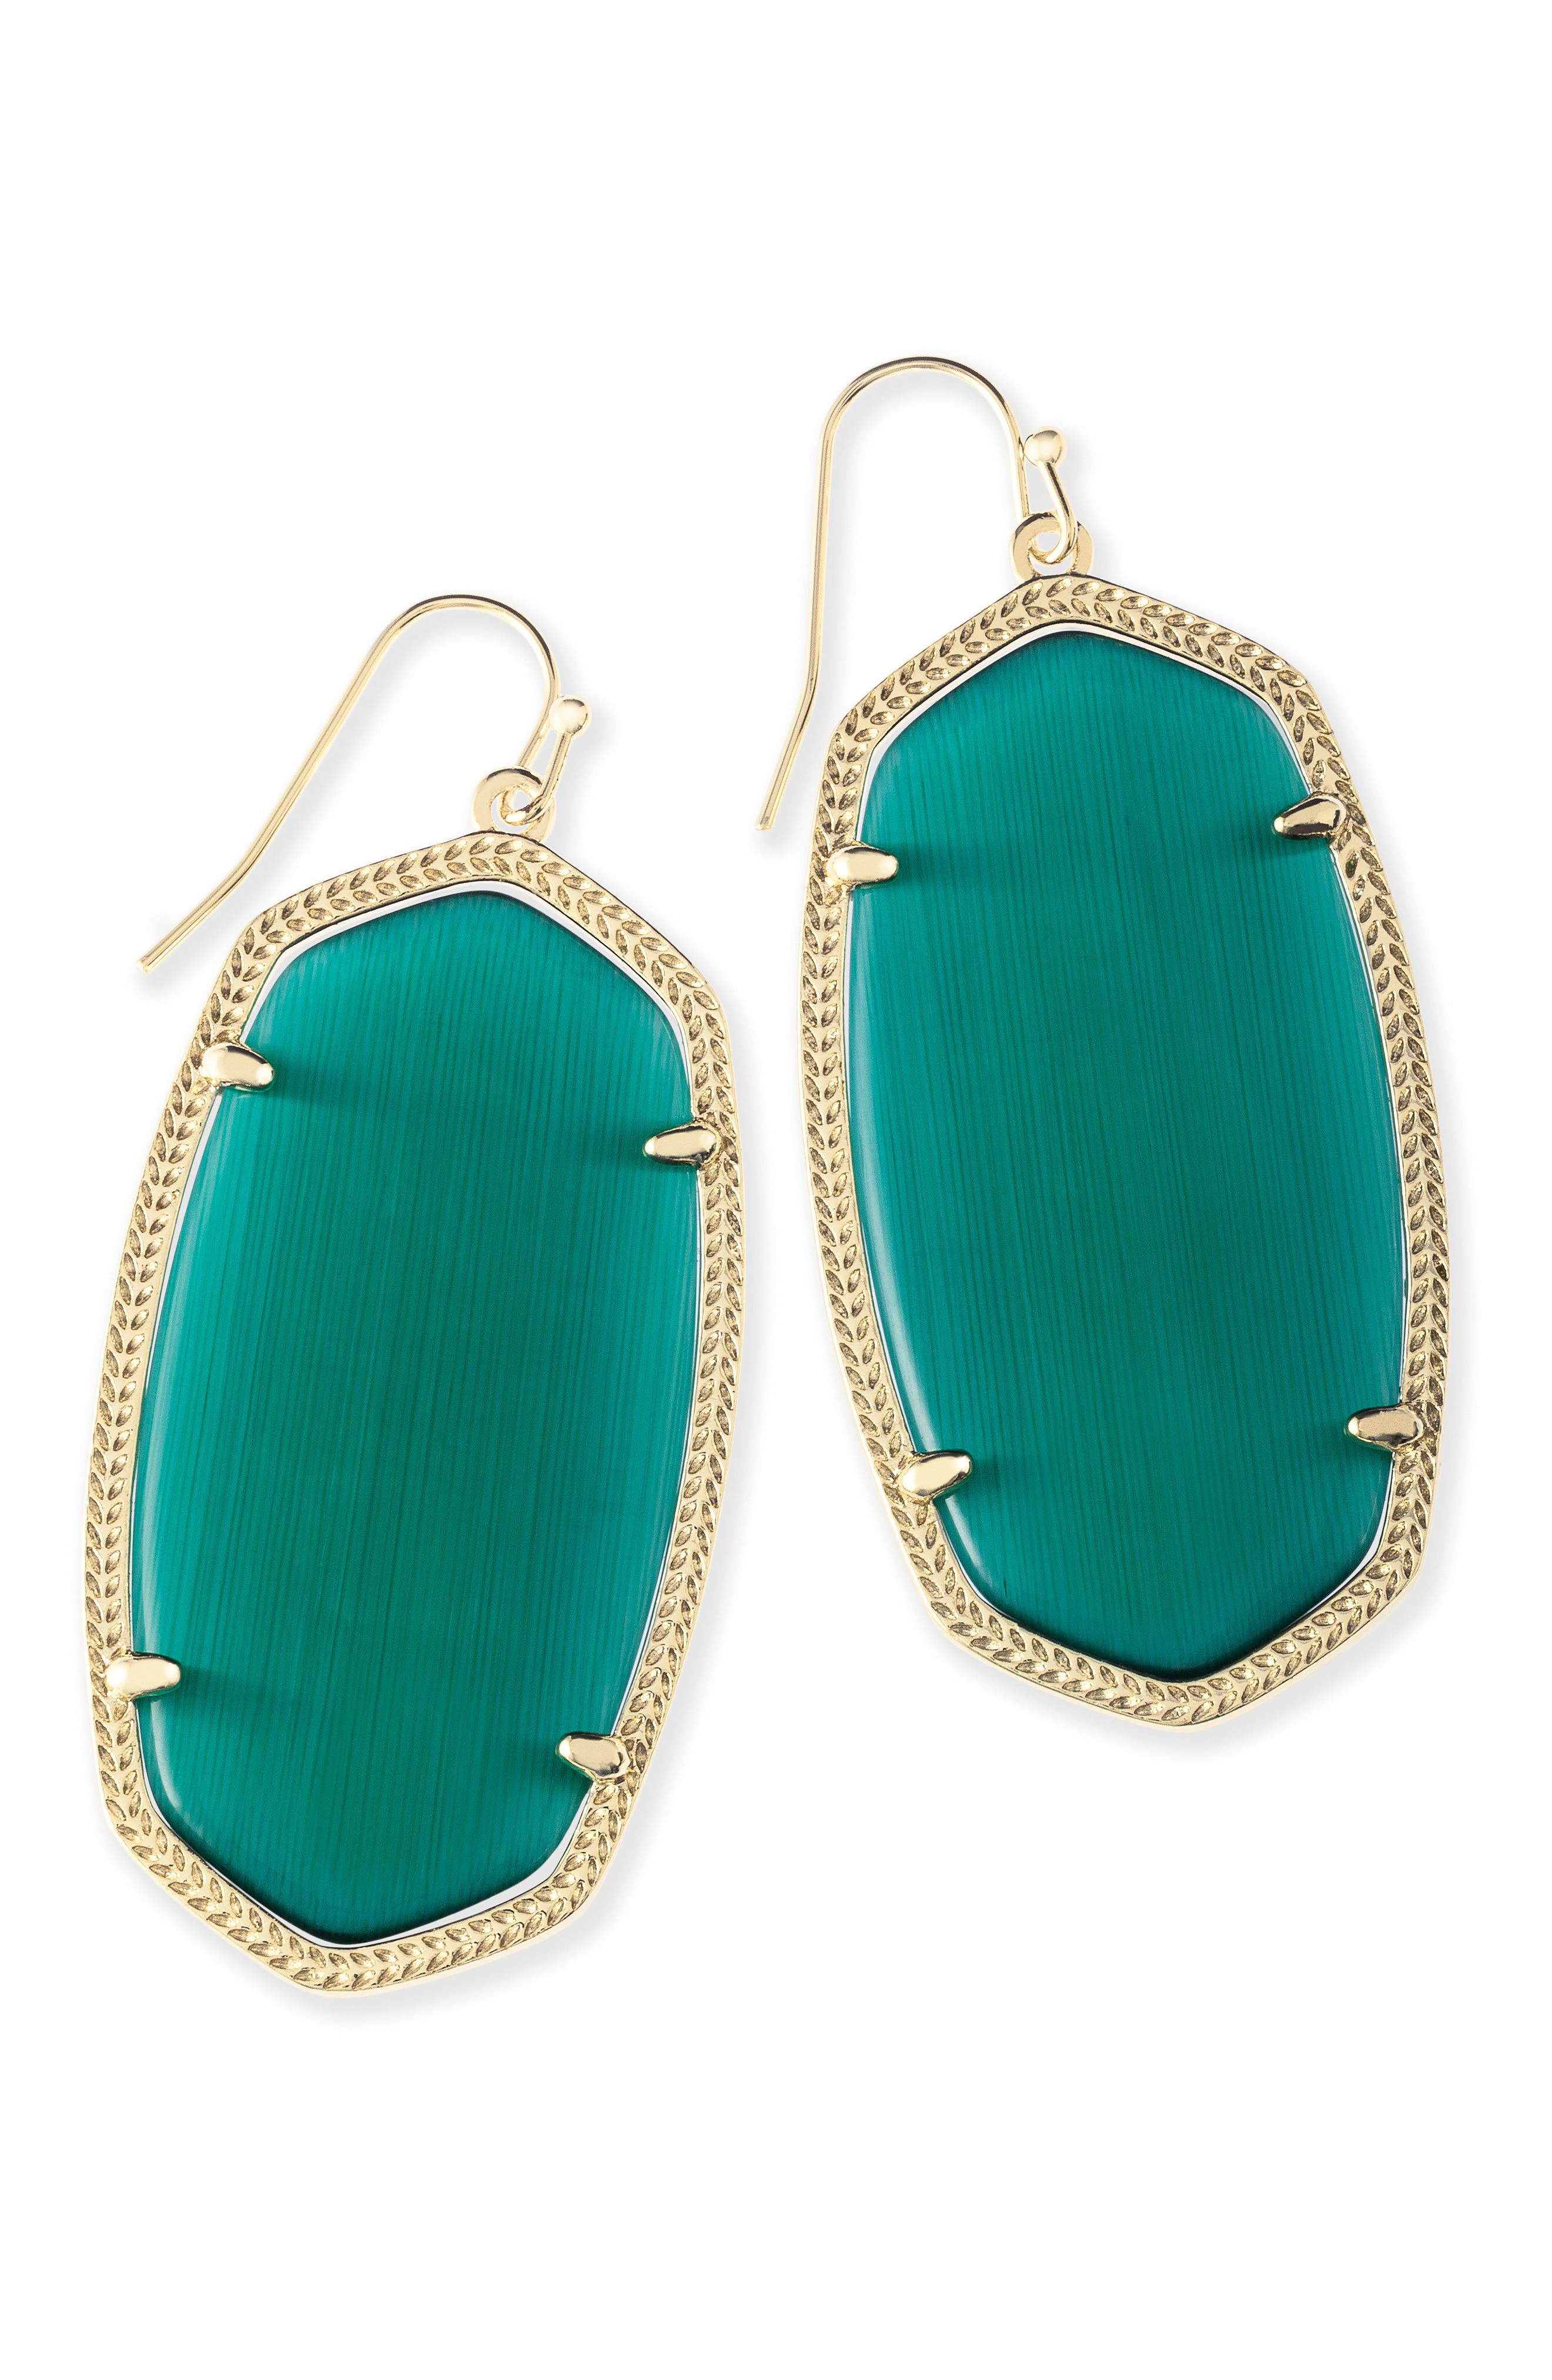 Danielle - Large Oval Statement Earrings,                             Alternate thumbnail 99, color,